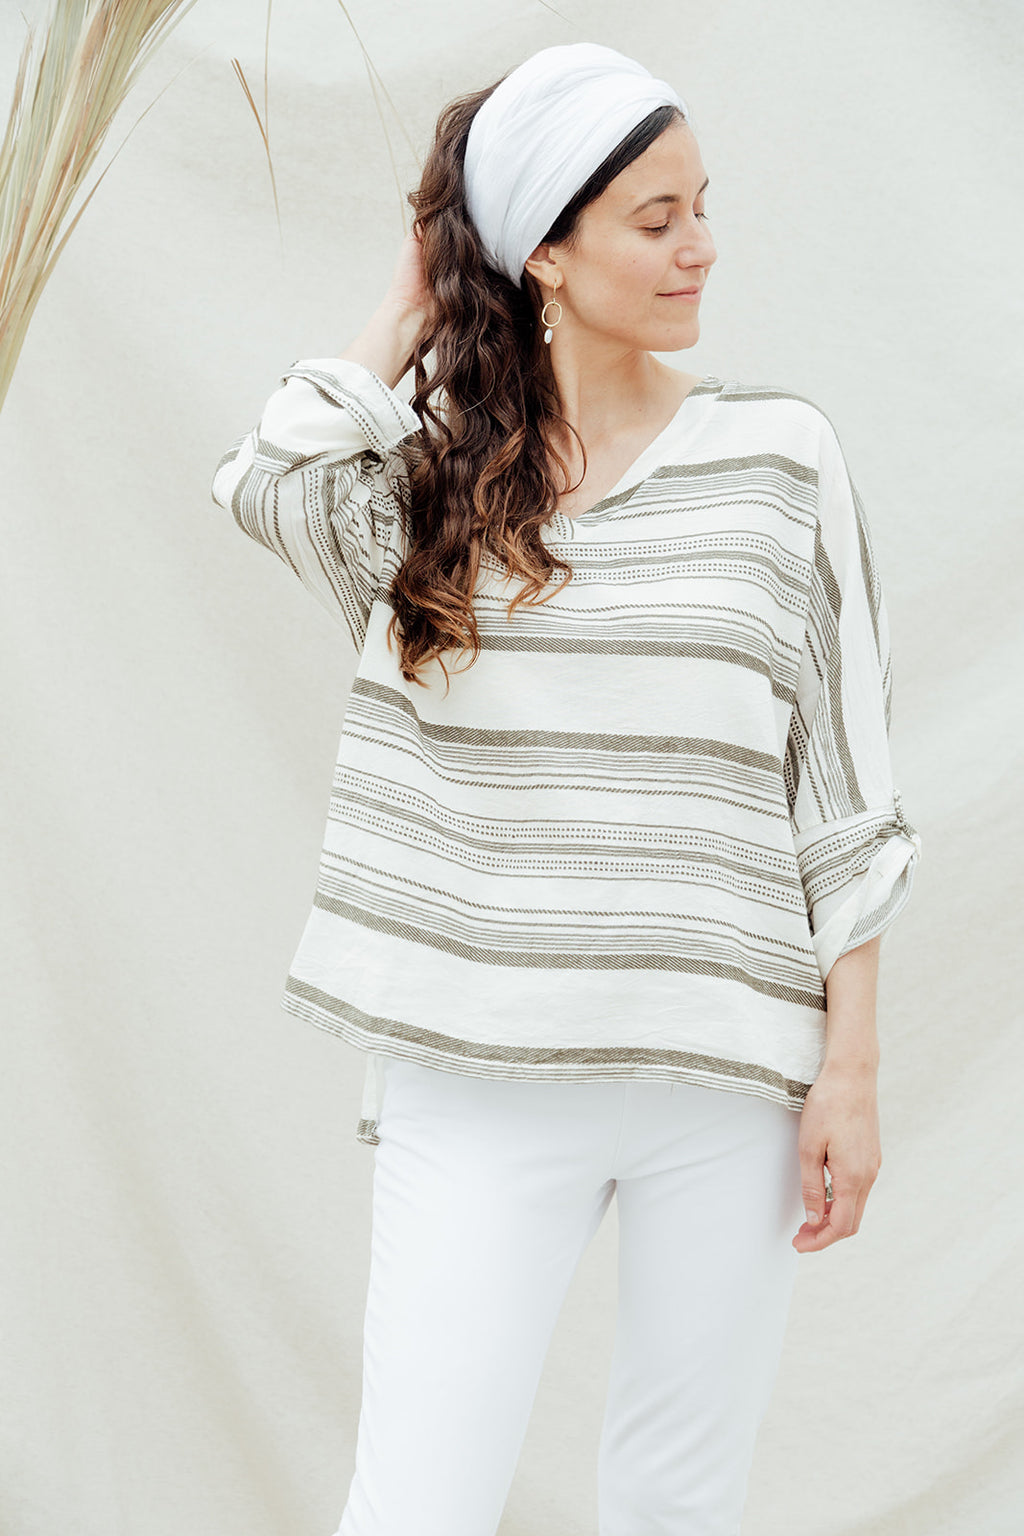 Linen top with stripes